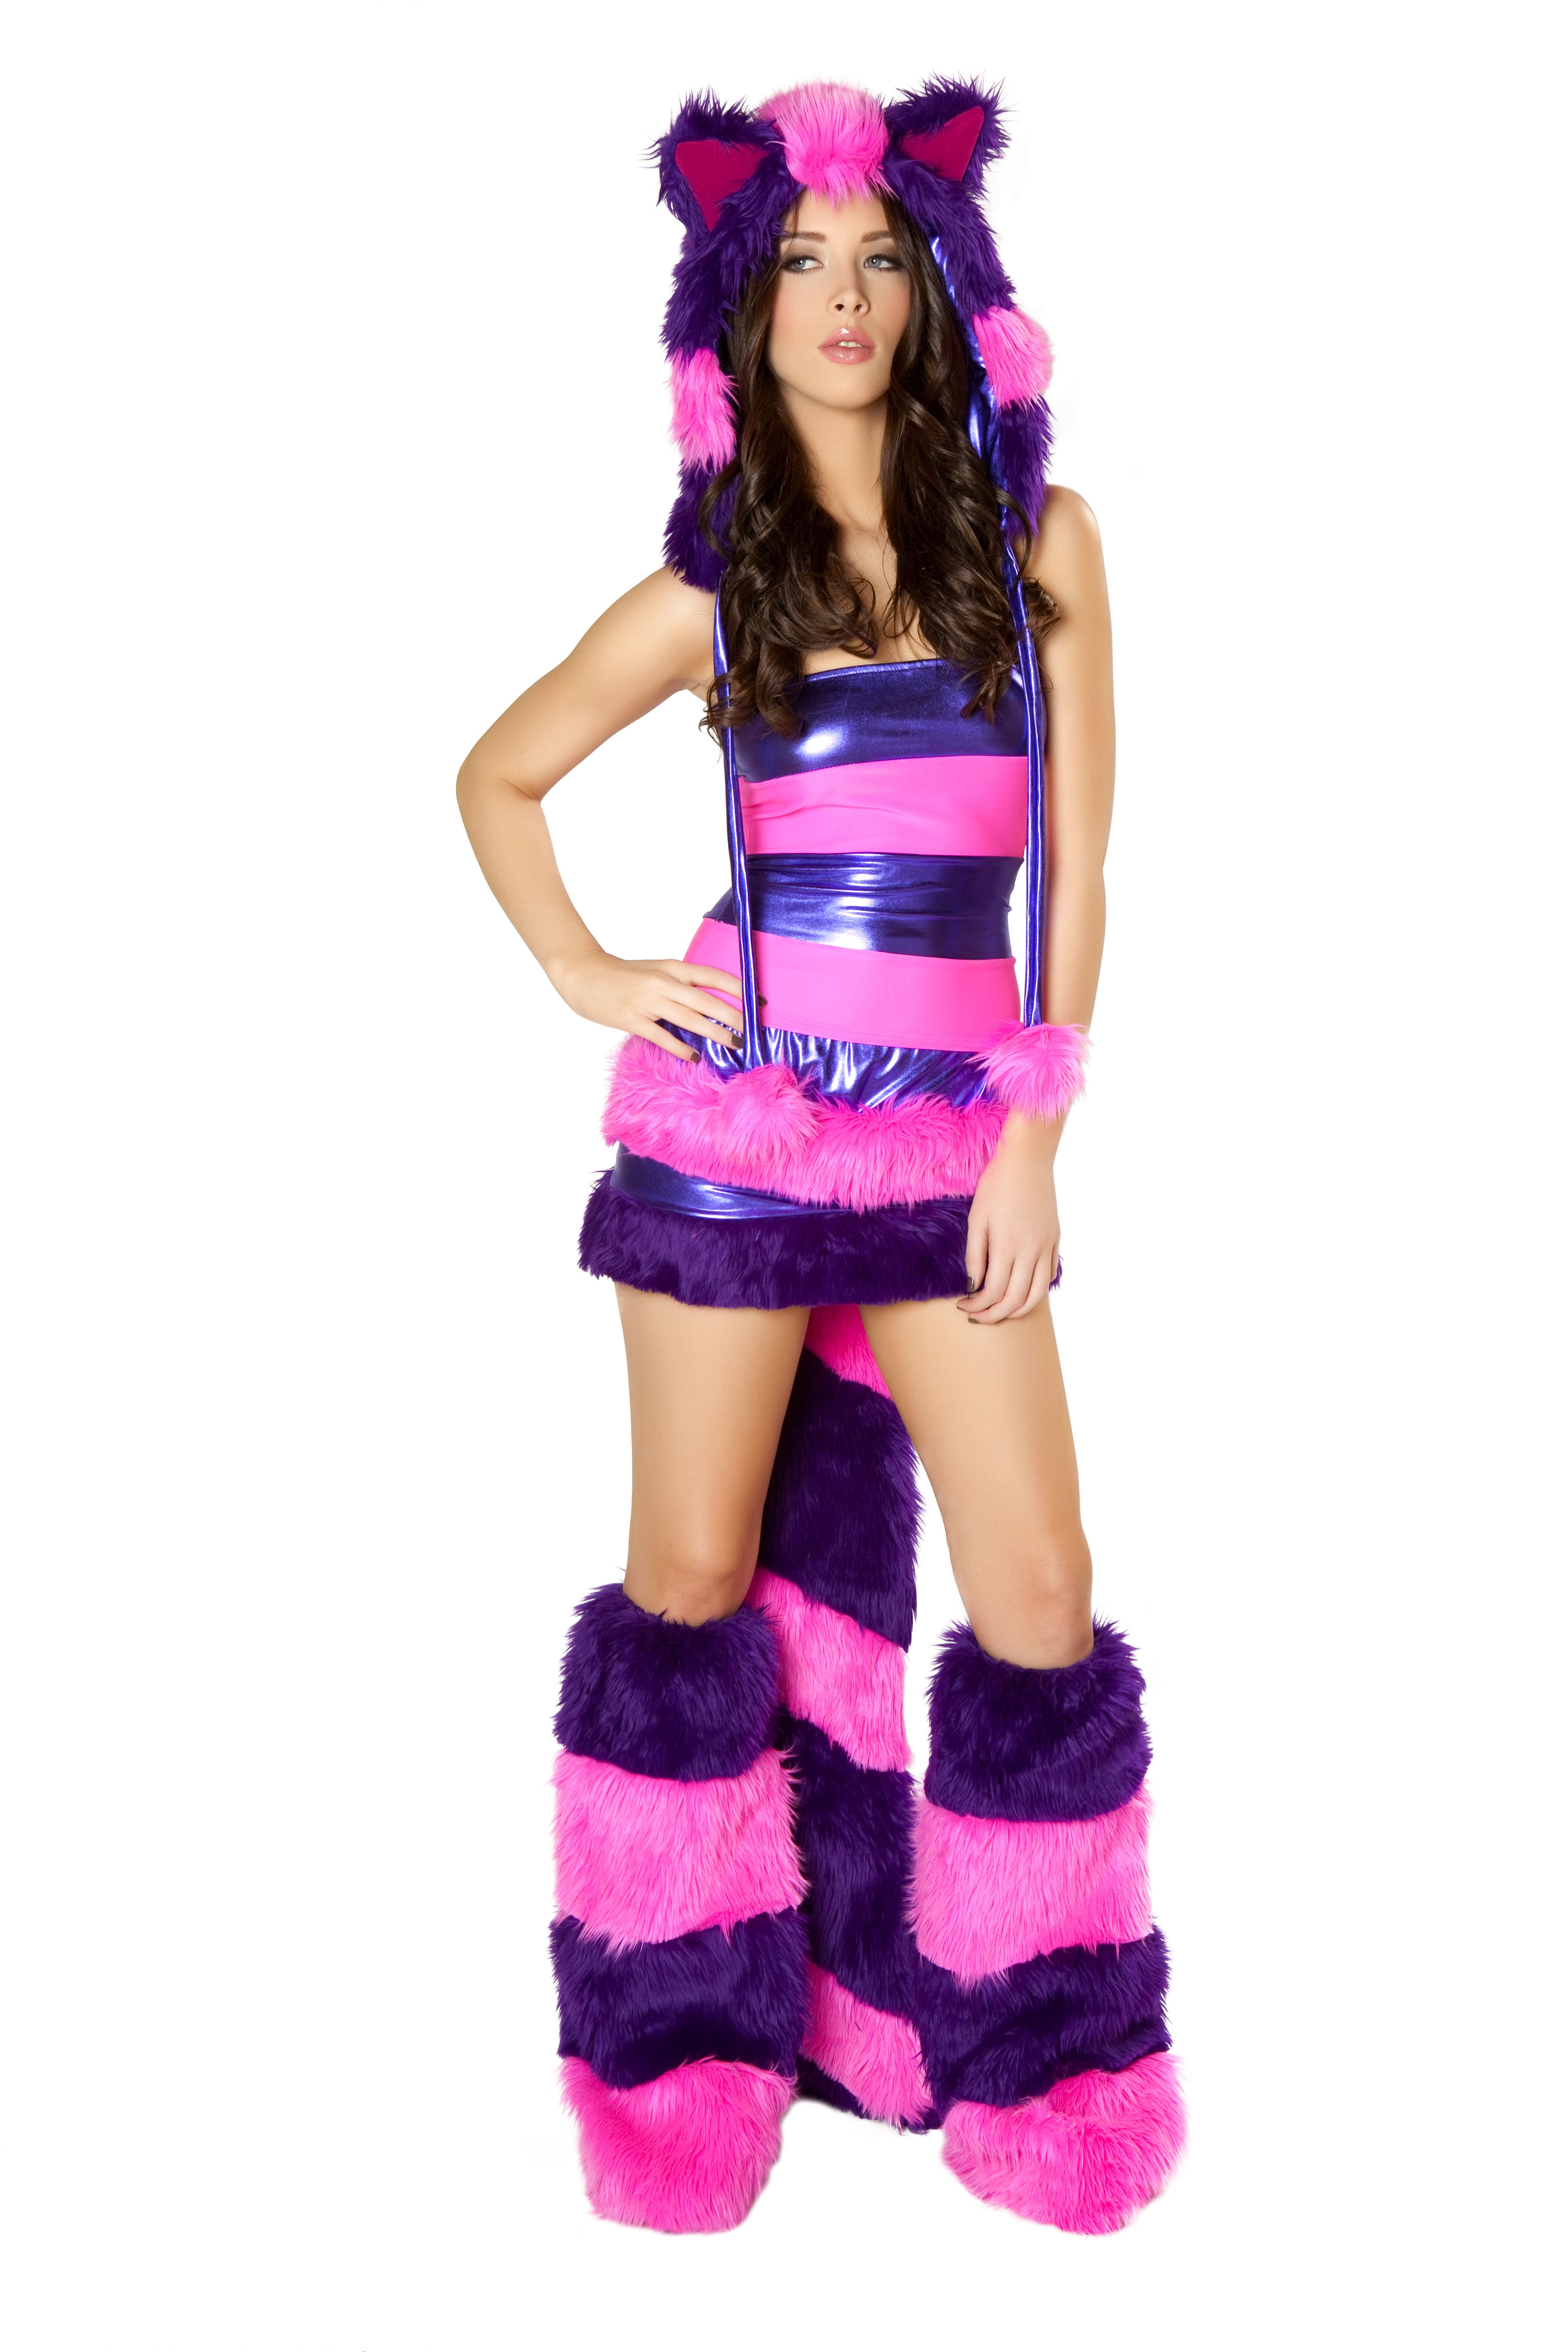 furry cheshire cat two piece costume by j valentine faux fur cheshire cat halloween costume - Cat Outfit For Halloween